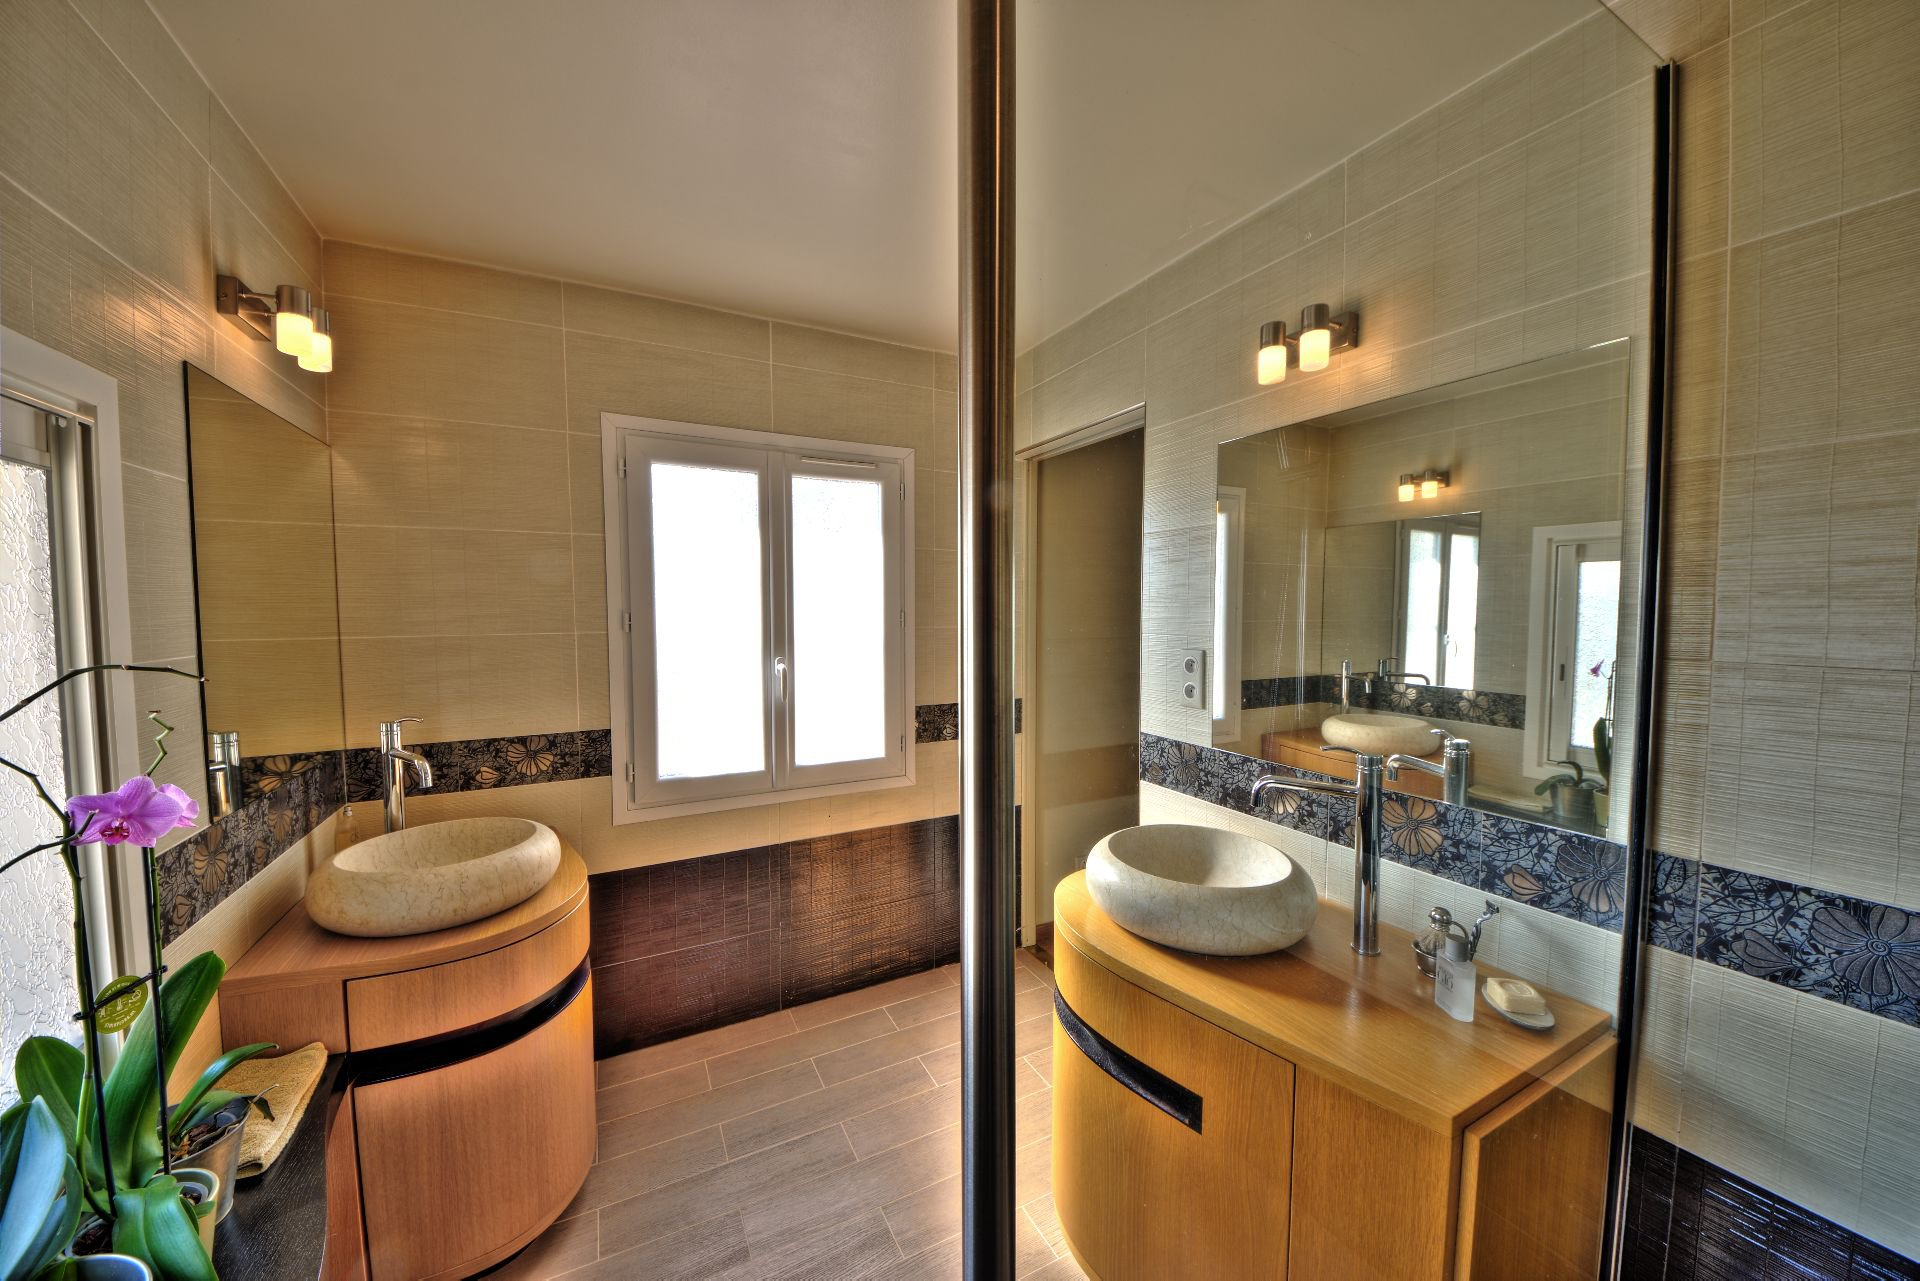 Bathroom master bedroom living room 200 m², 4 bedrooms, outbuilding on 8000 m² agricultural area, Ampus, Var, Provence, Paca